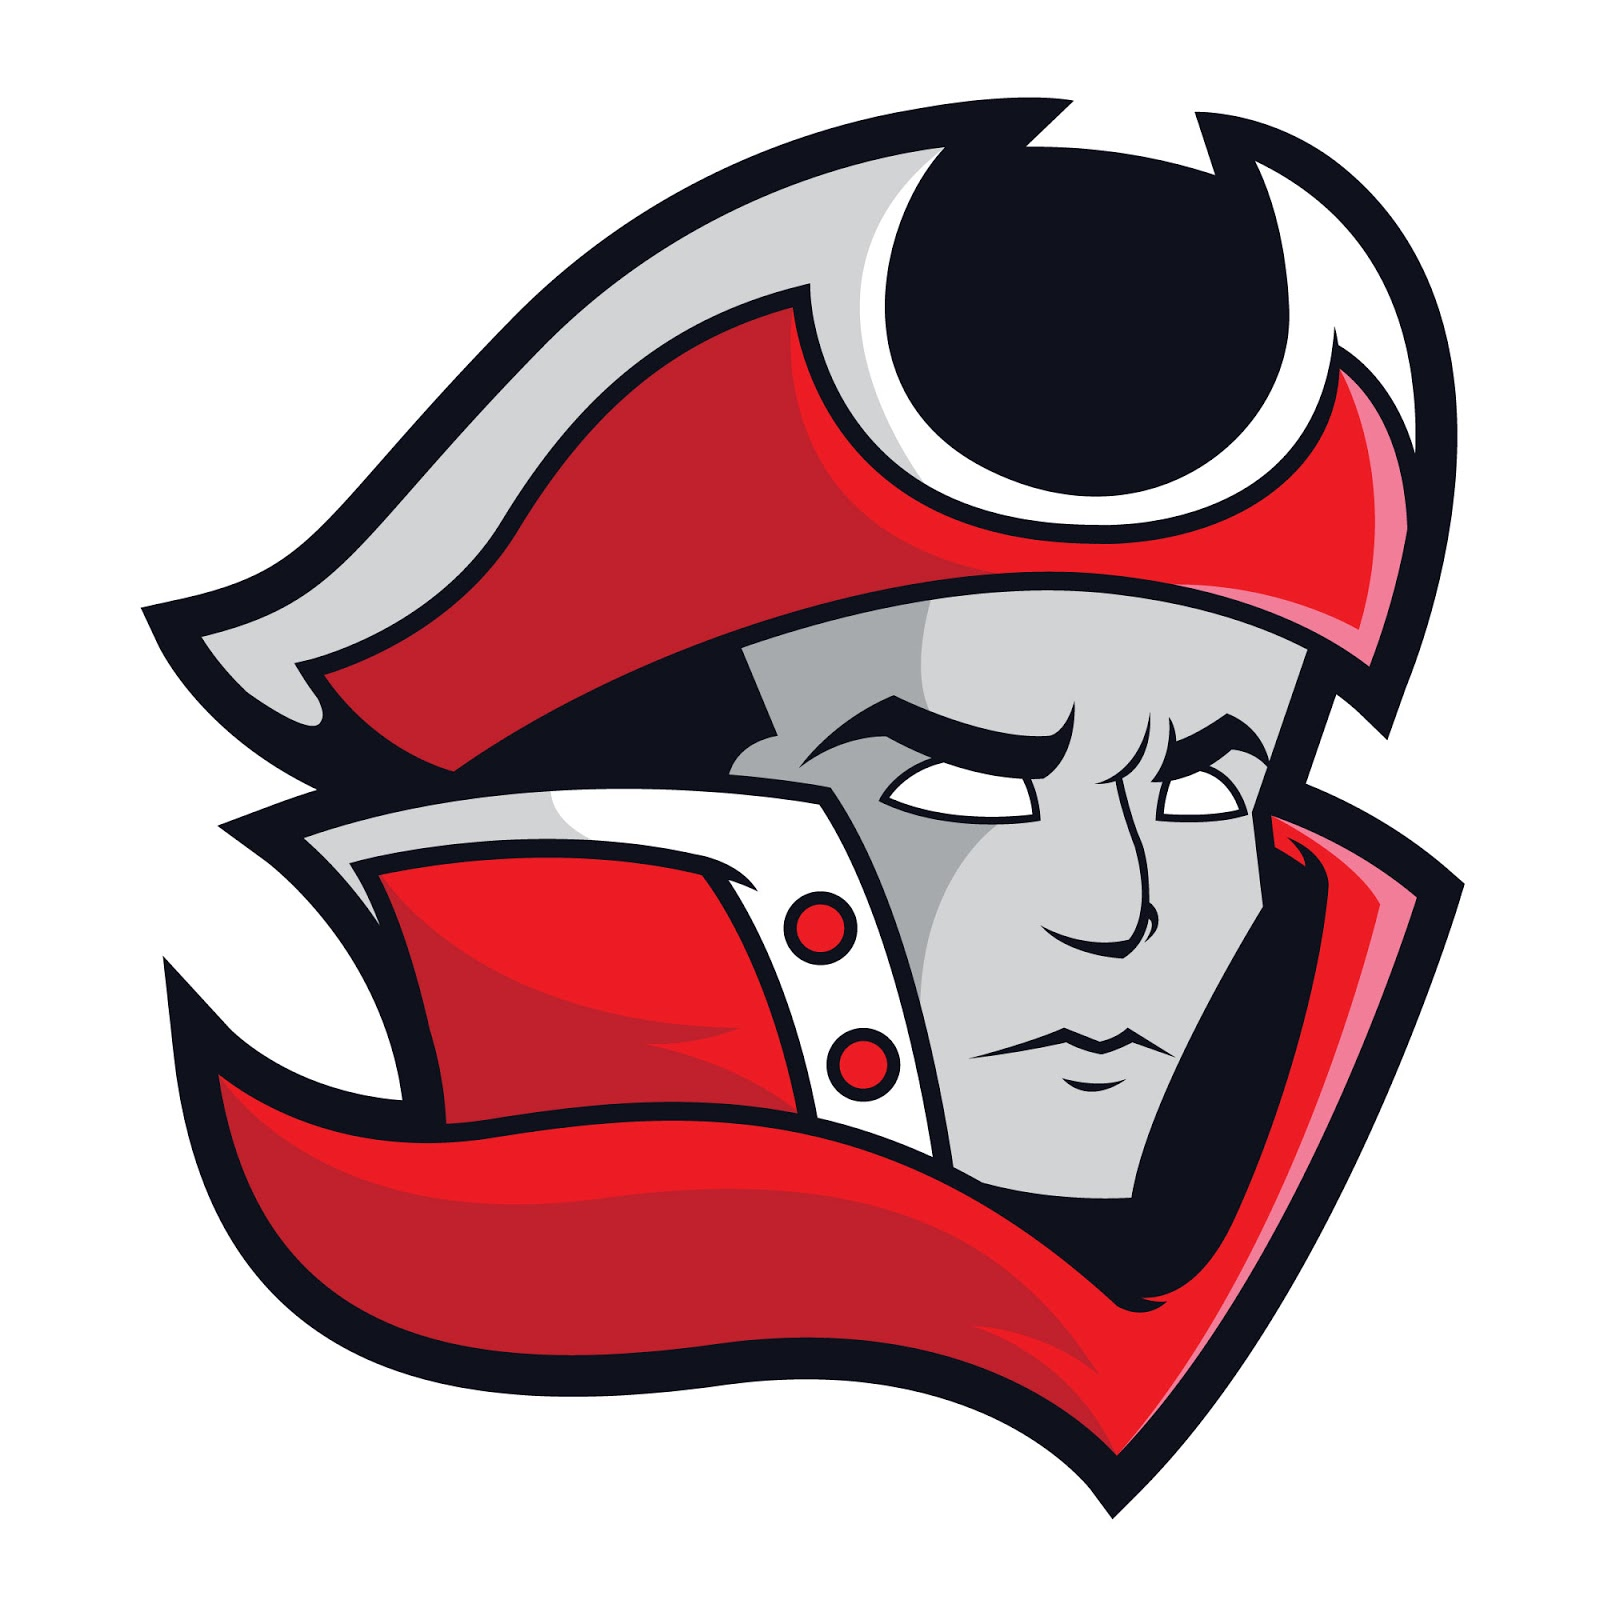 Colonial Mascot Logo Free Download Vector CDR, AI, EPS and PNG Formats